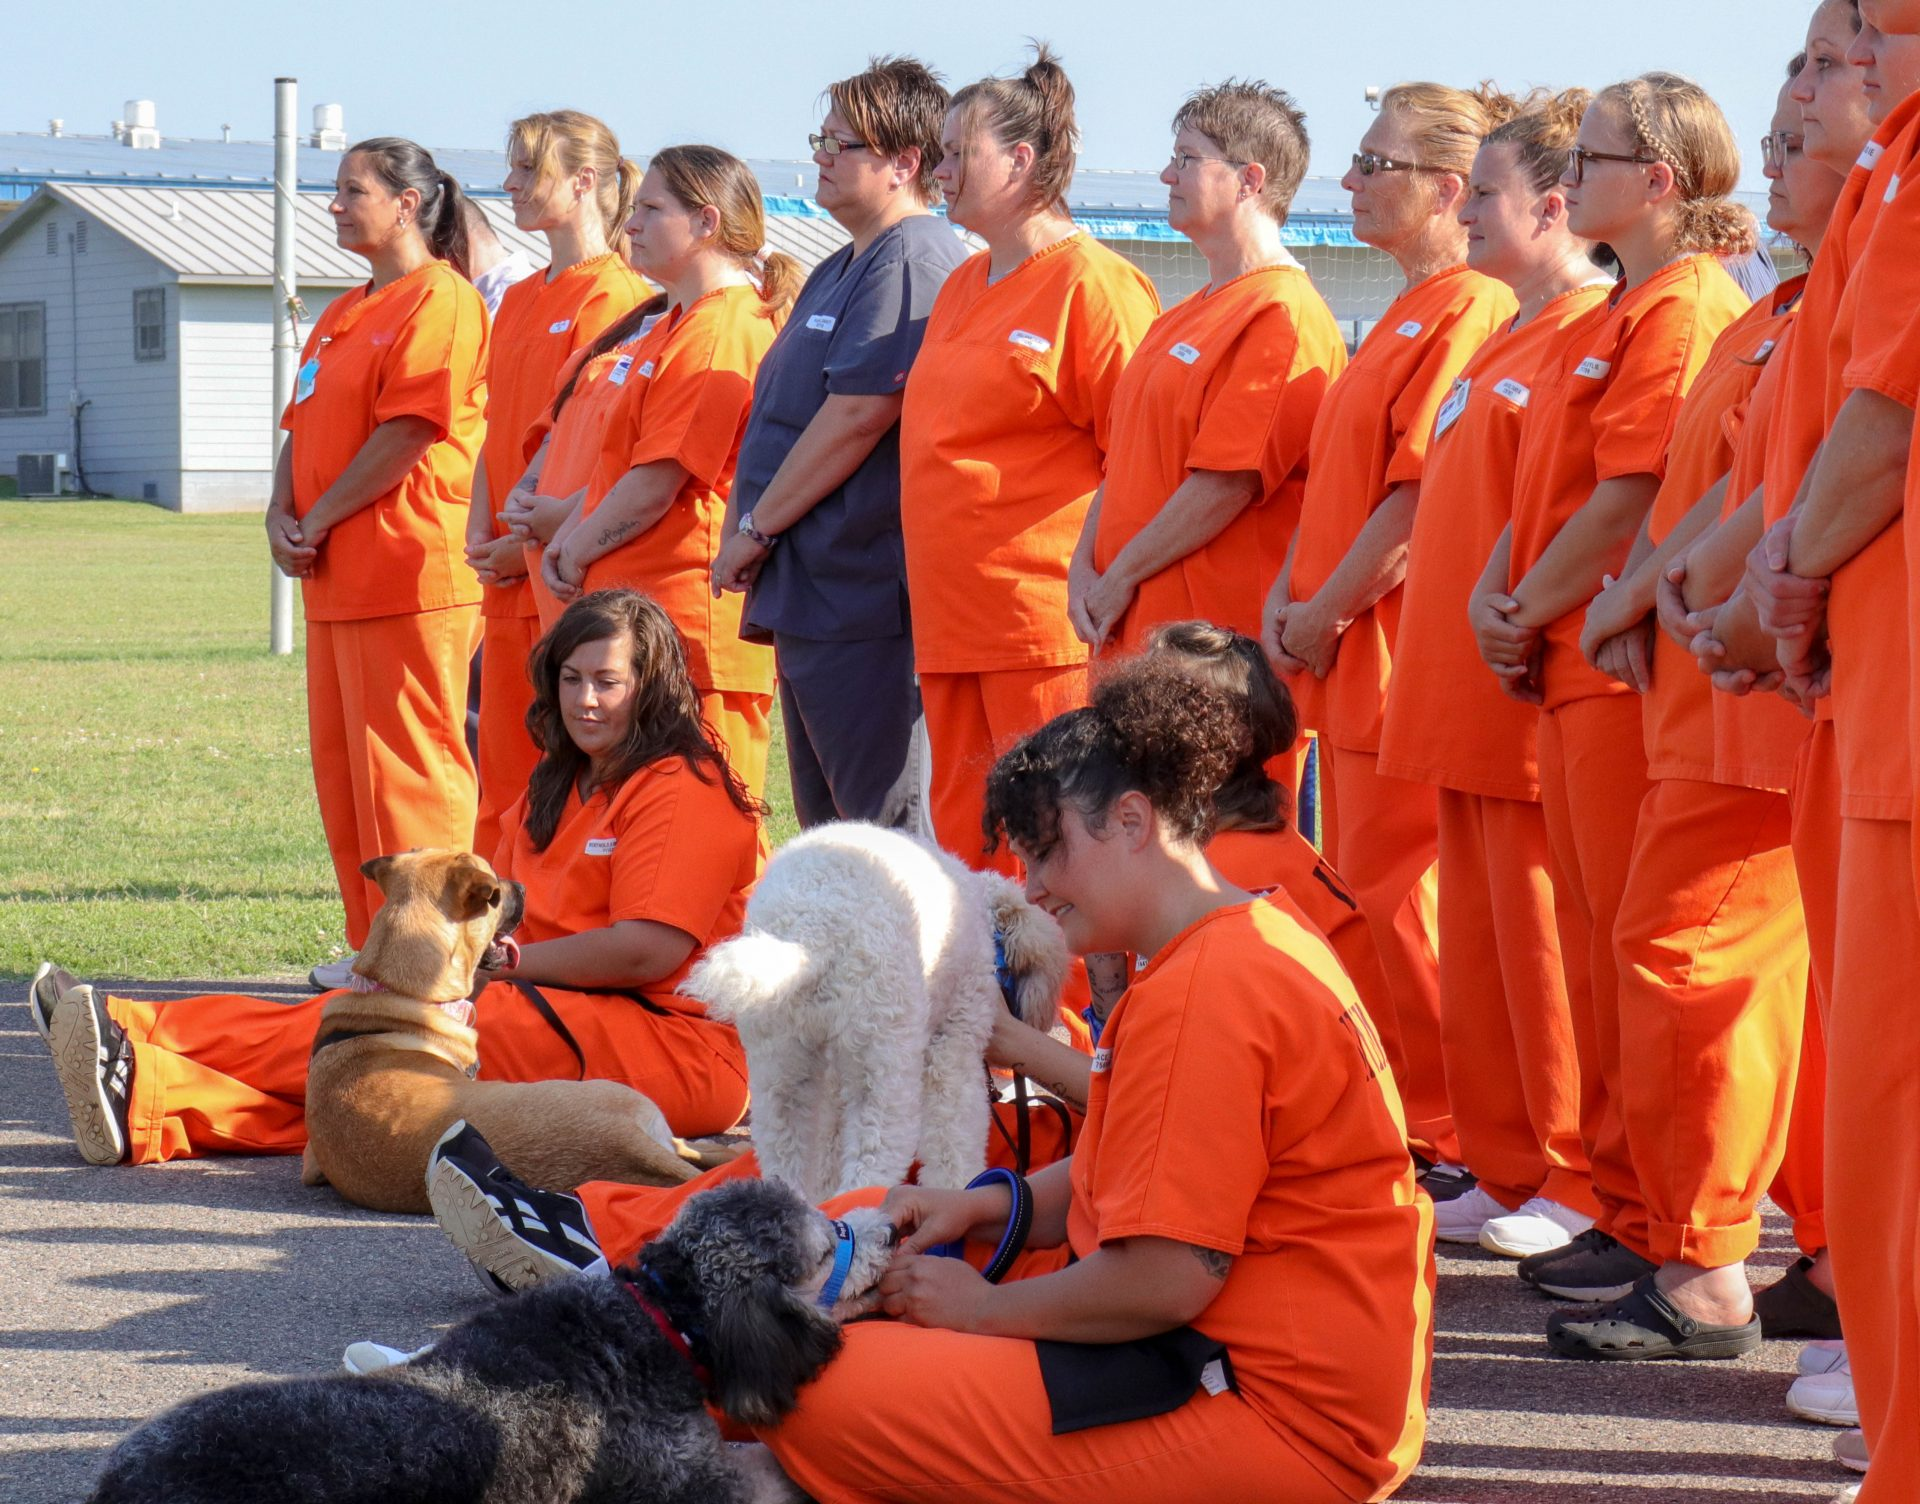 Women incarcerated at Mabel Bassett Correctional Center attend a ceremony commemorating a dog training program at the prison.